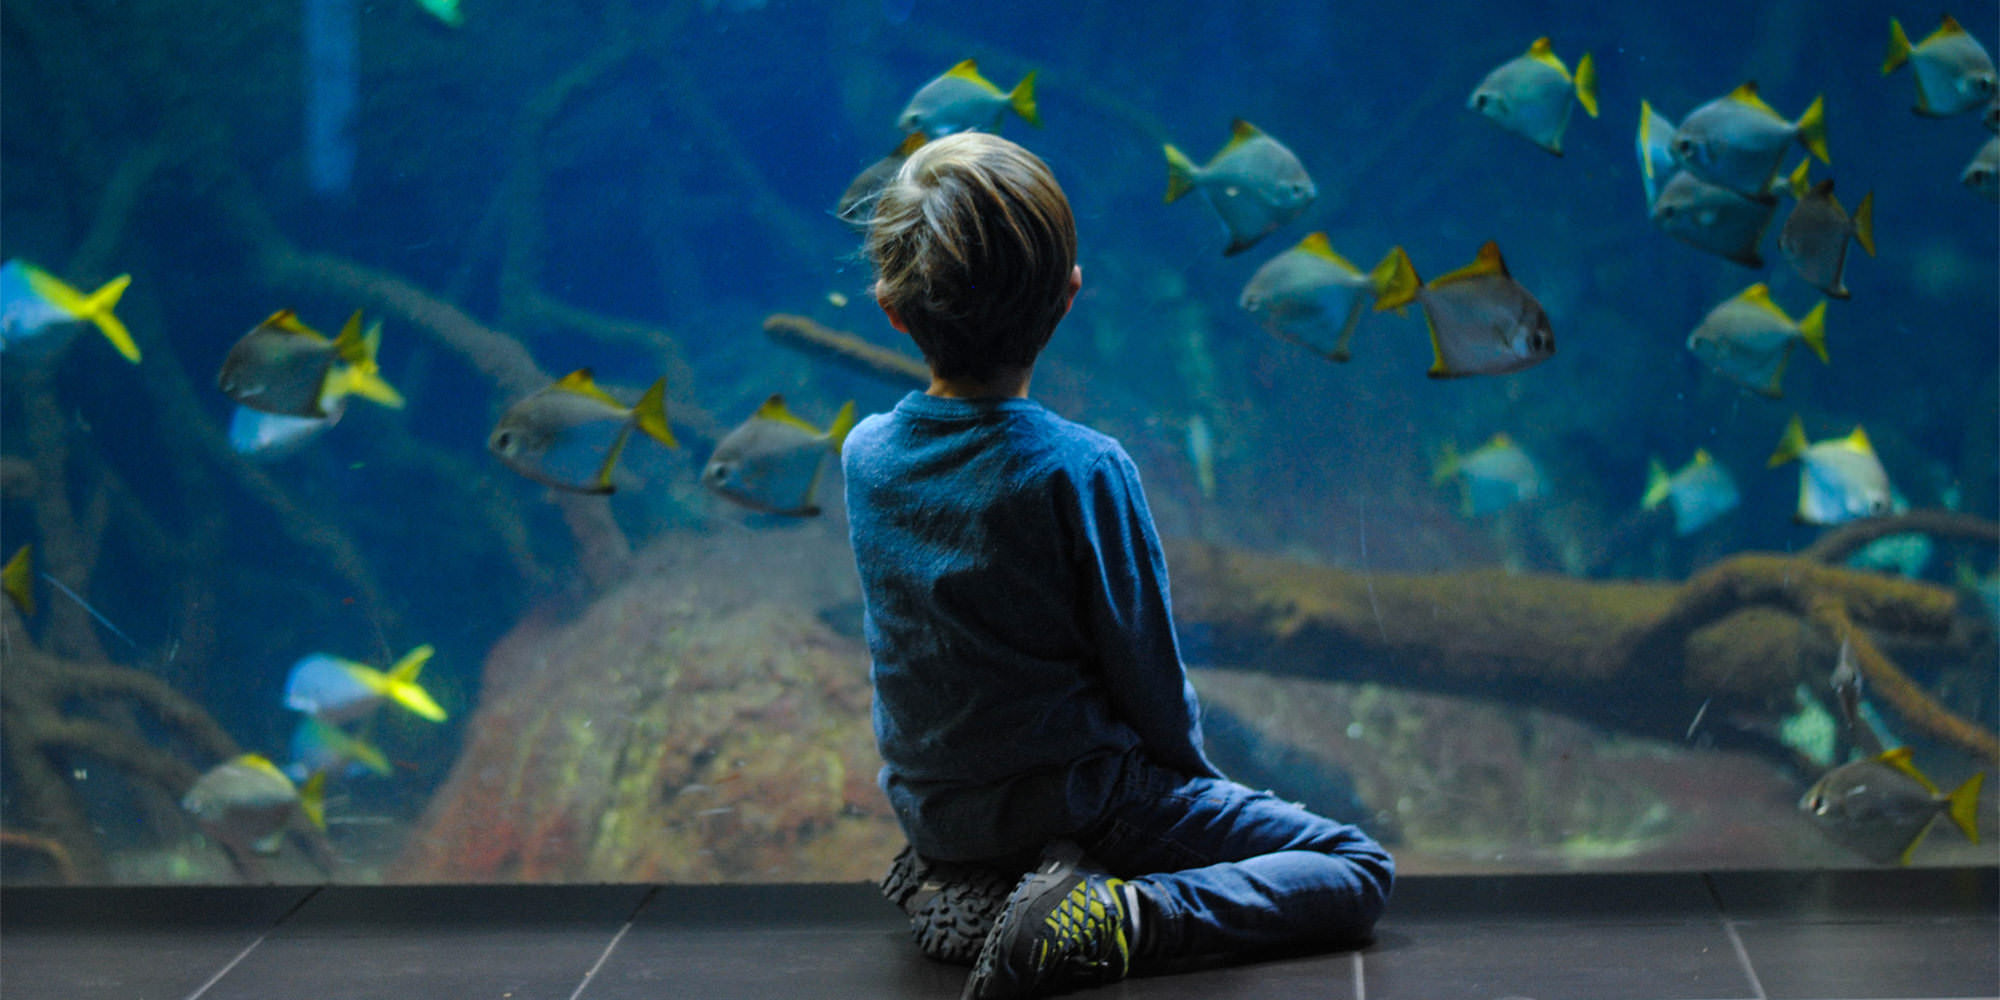 A Caucasian boy with light brown hair sits in front of a big aquarium tank. His back is turned to the camera and he is engrossed in observing the fish.